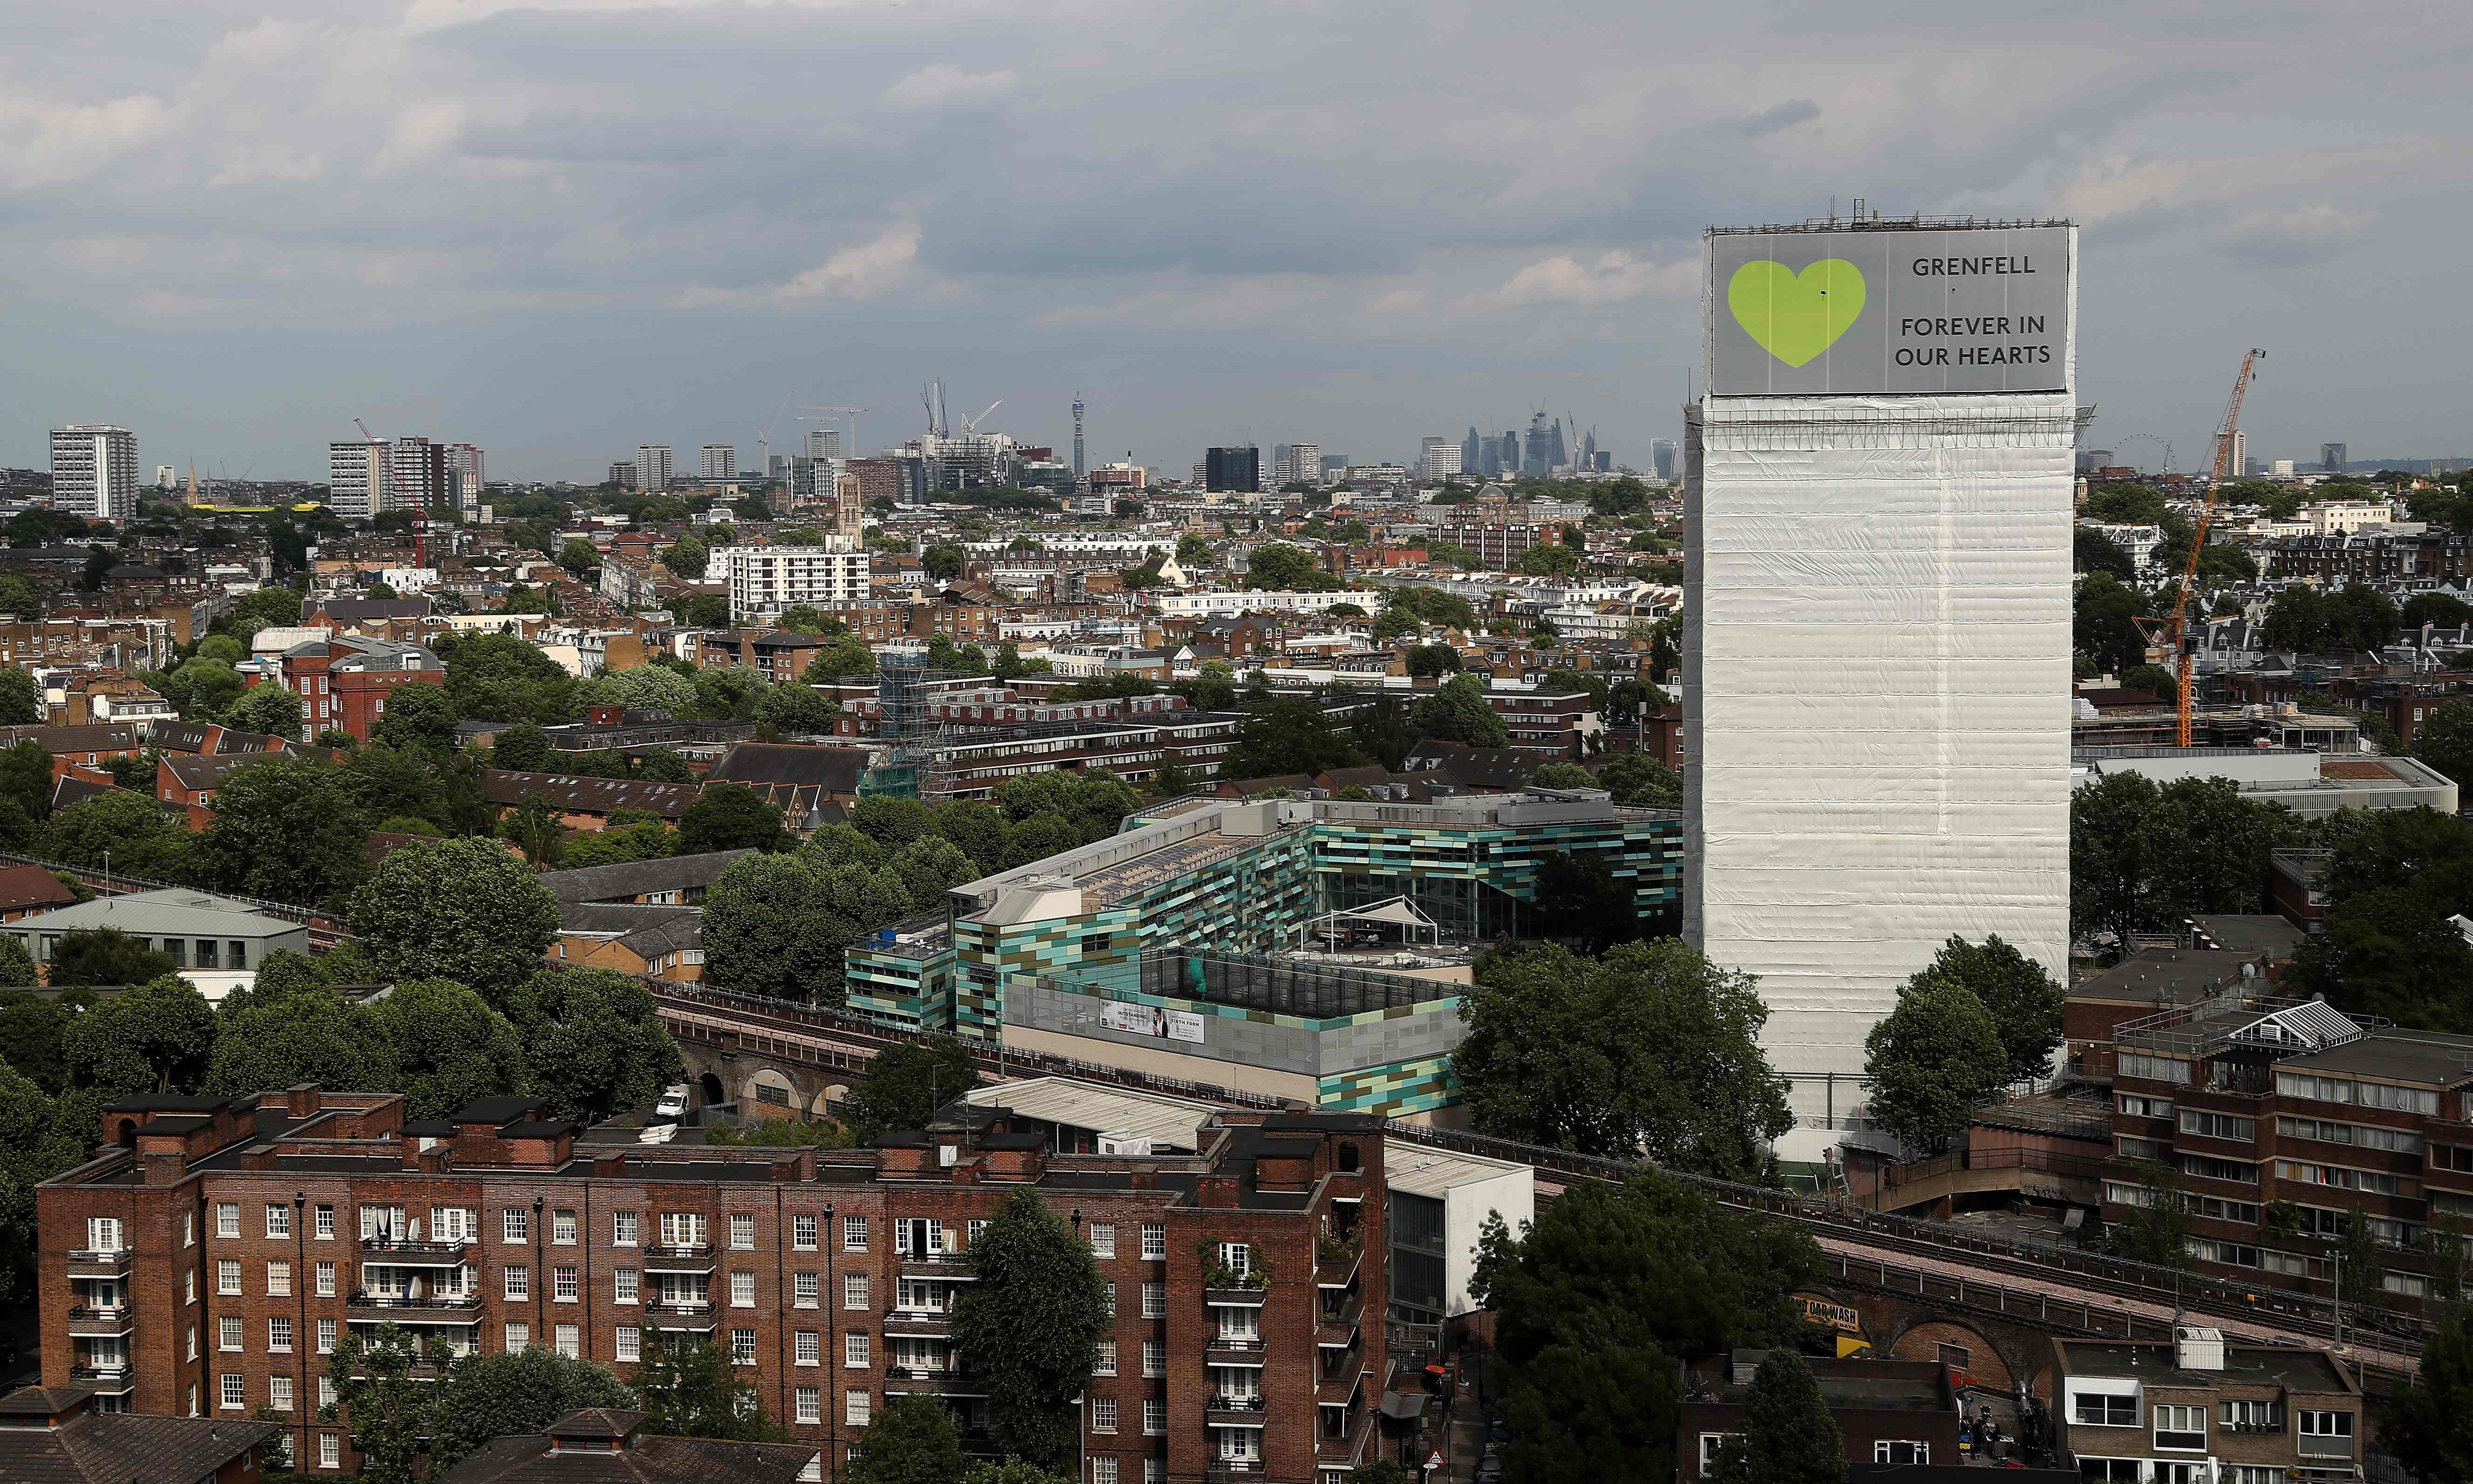 Grenfell residents' rights were breached – equalities watchdog